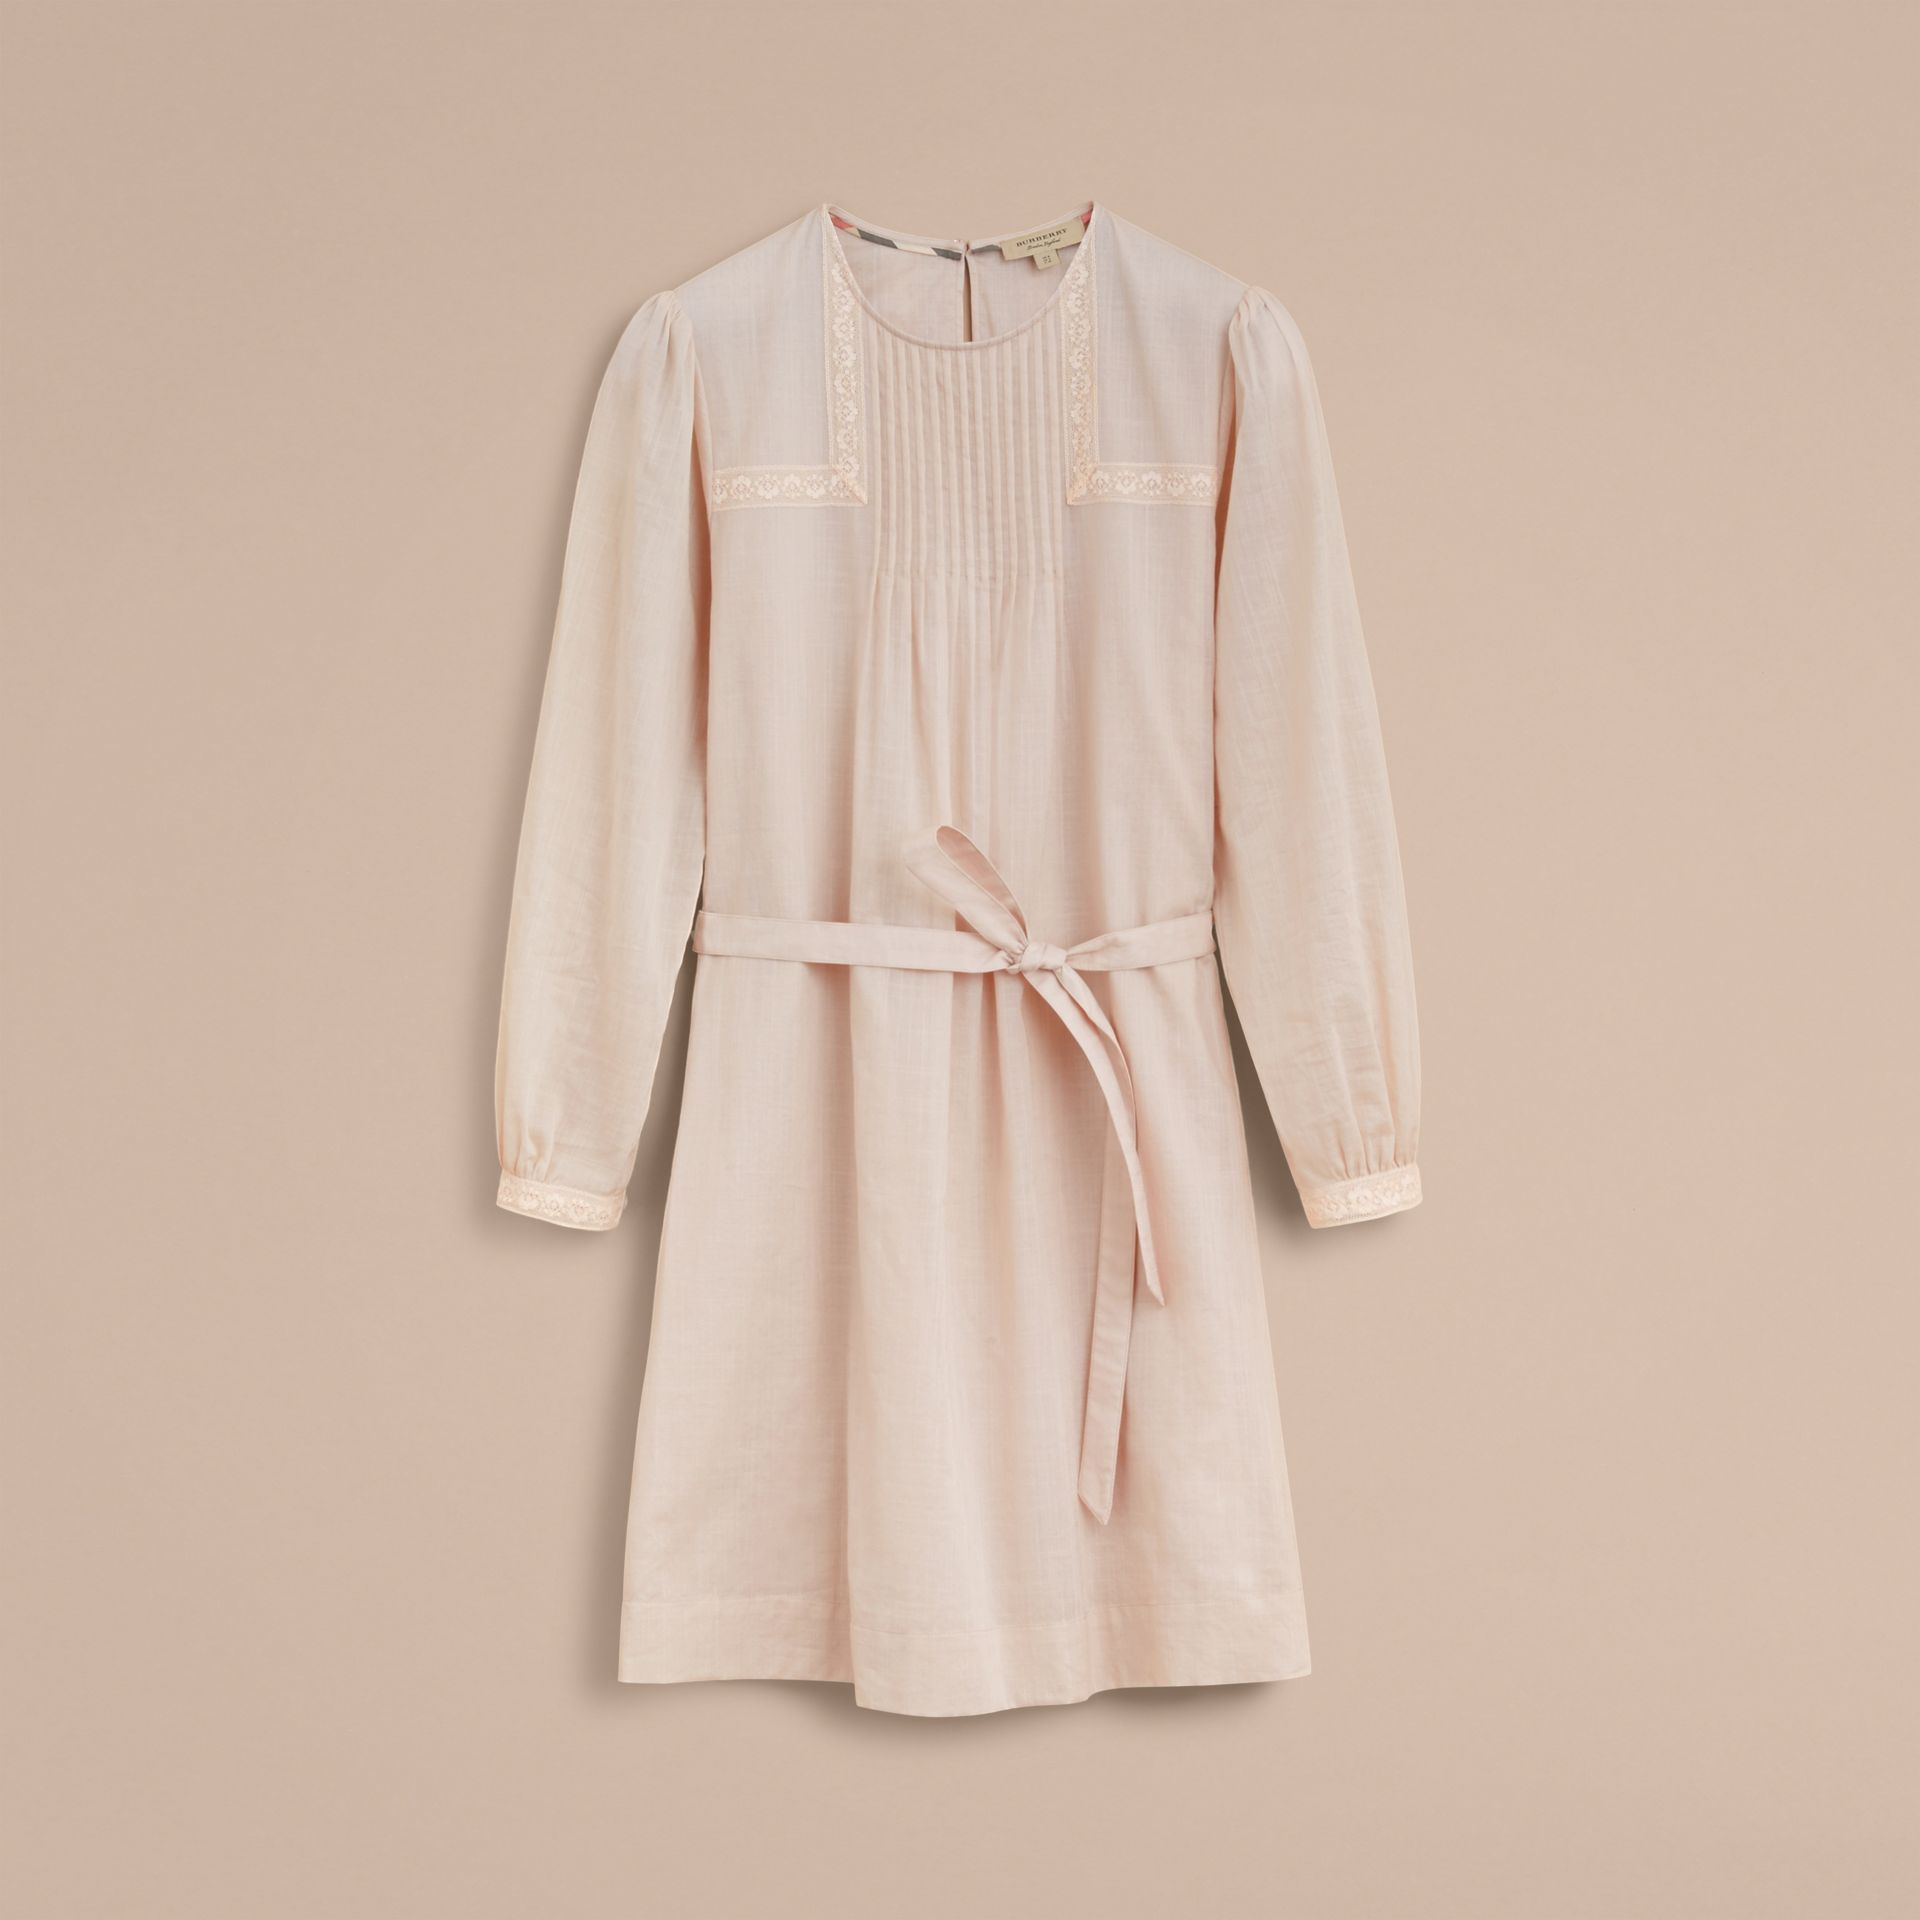 Pintuck and Lace Detail Cotton Dress in Chalk Pink - Women | Burberry - gallery image 4